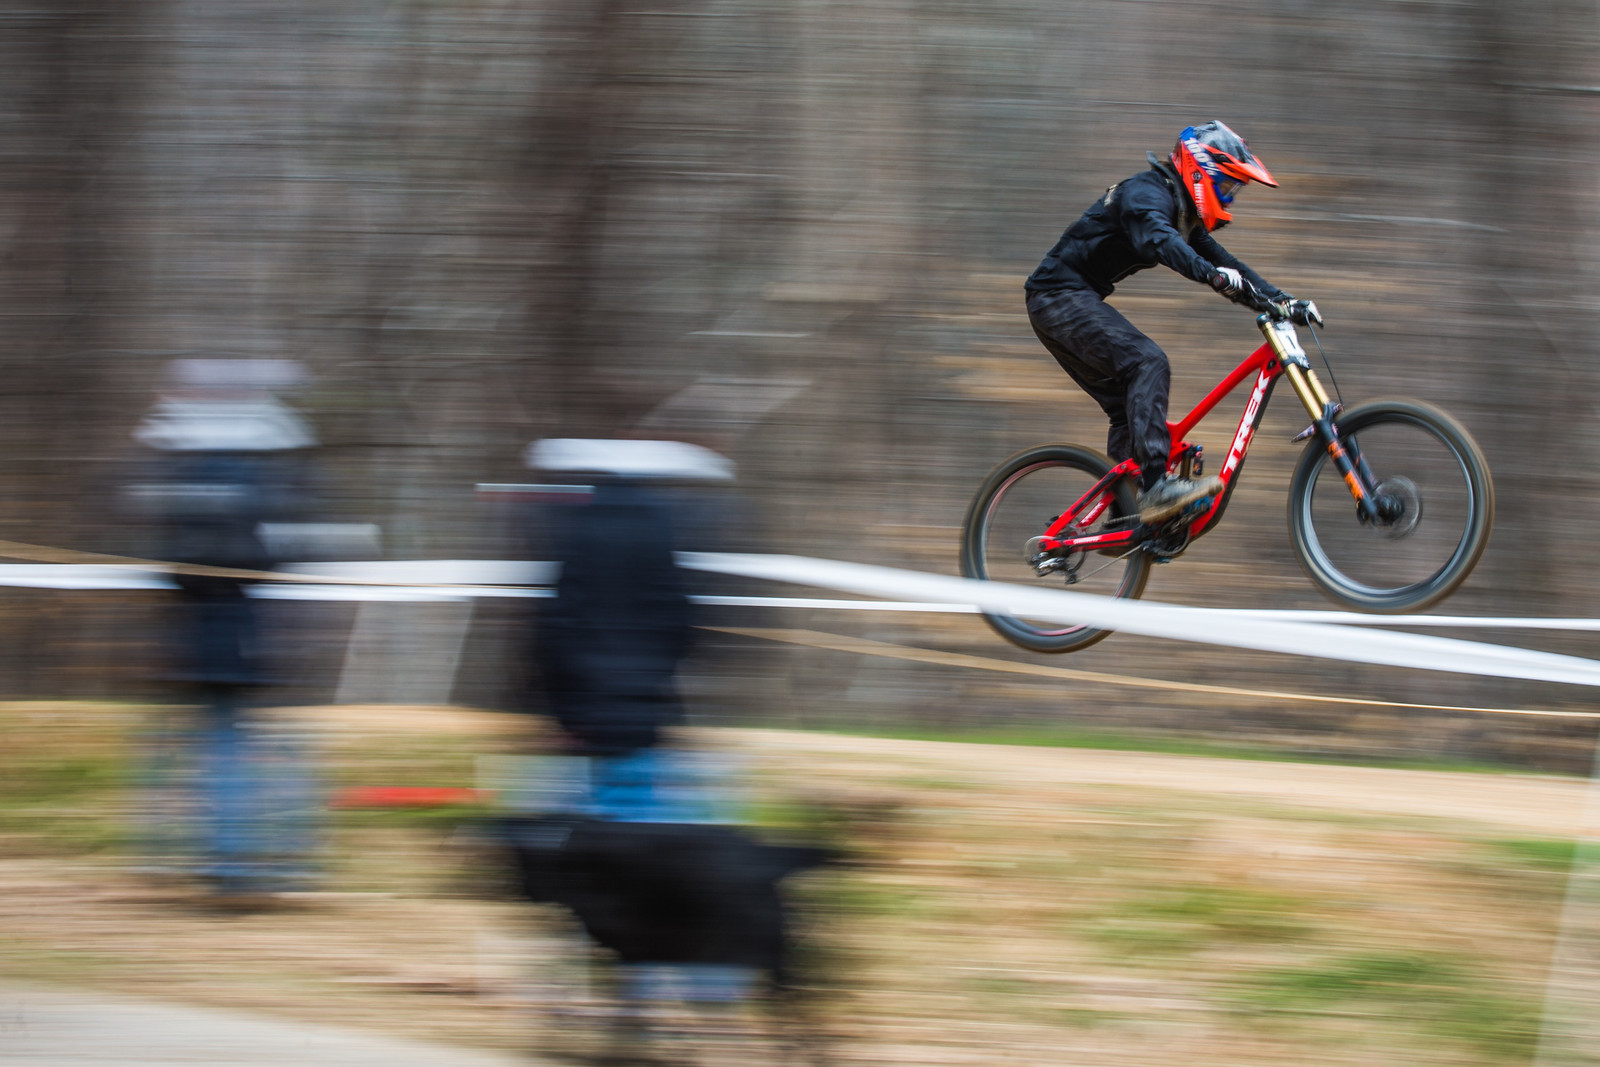 Jake Kahn - 50 Photos from Race Day at the Windrock Pro GRT - Mountain Biking Pictures - Vital MTB